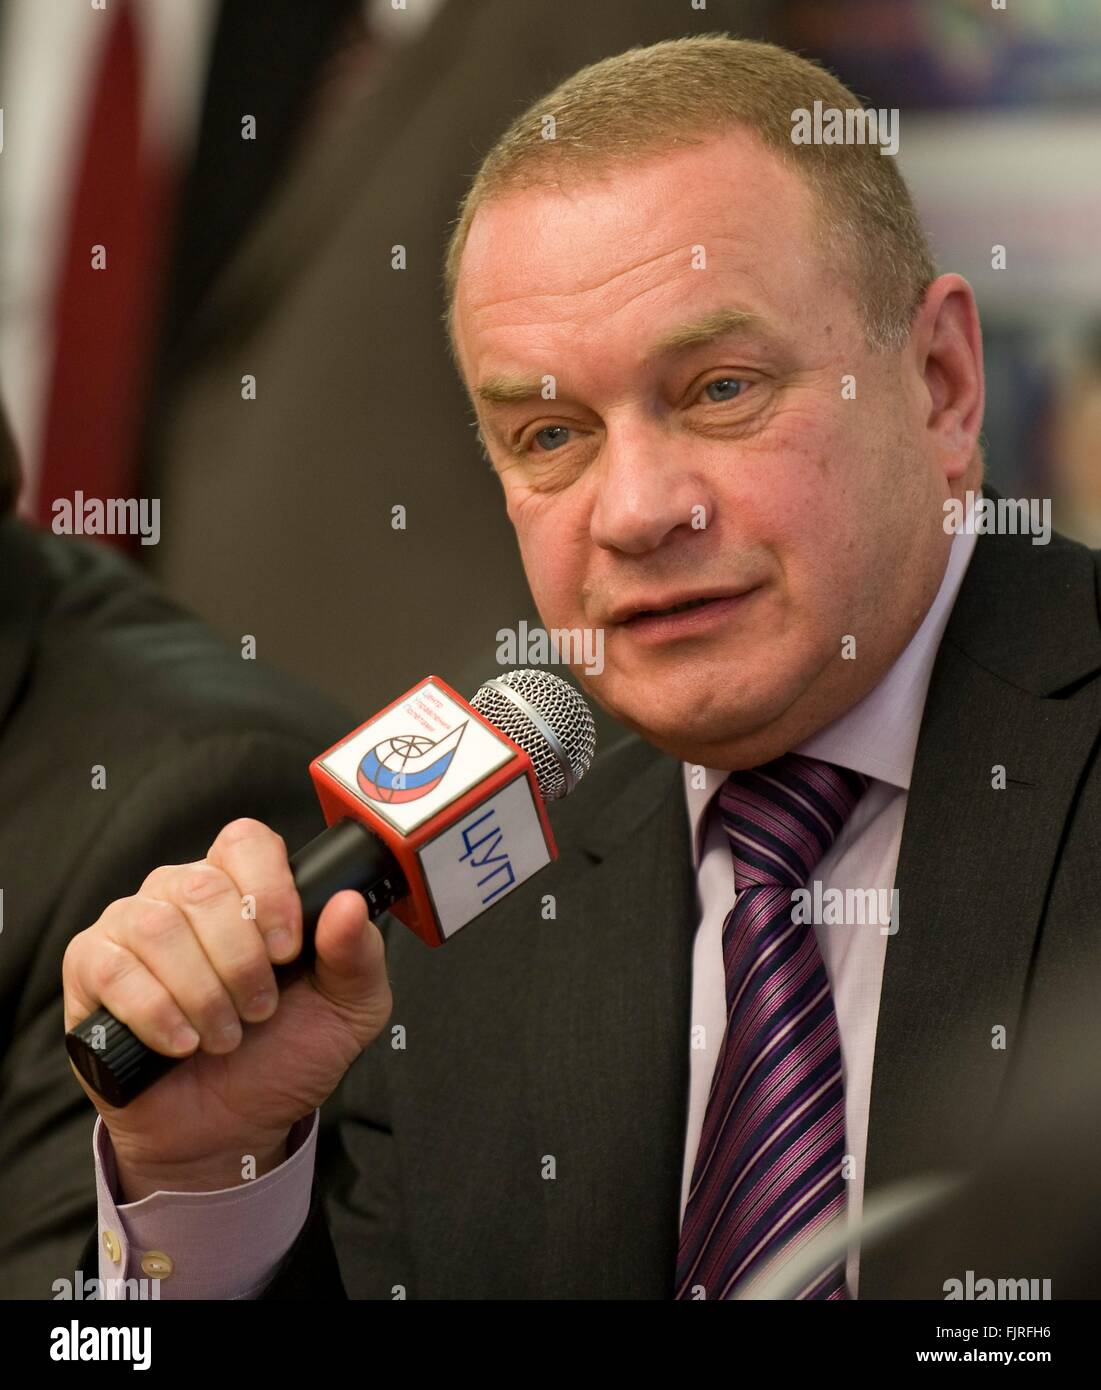 Vitaly Lopota, President and General Designer of RSC-Energia, answers questions from reporters following the sucessful - Stock Image